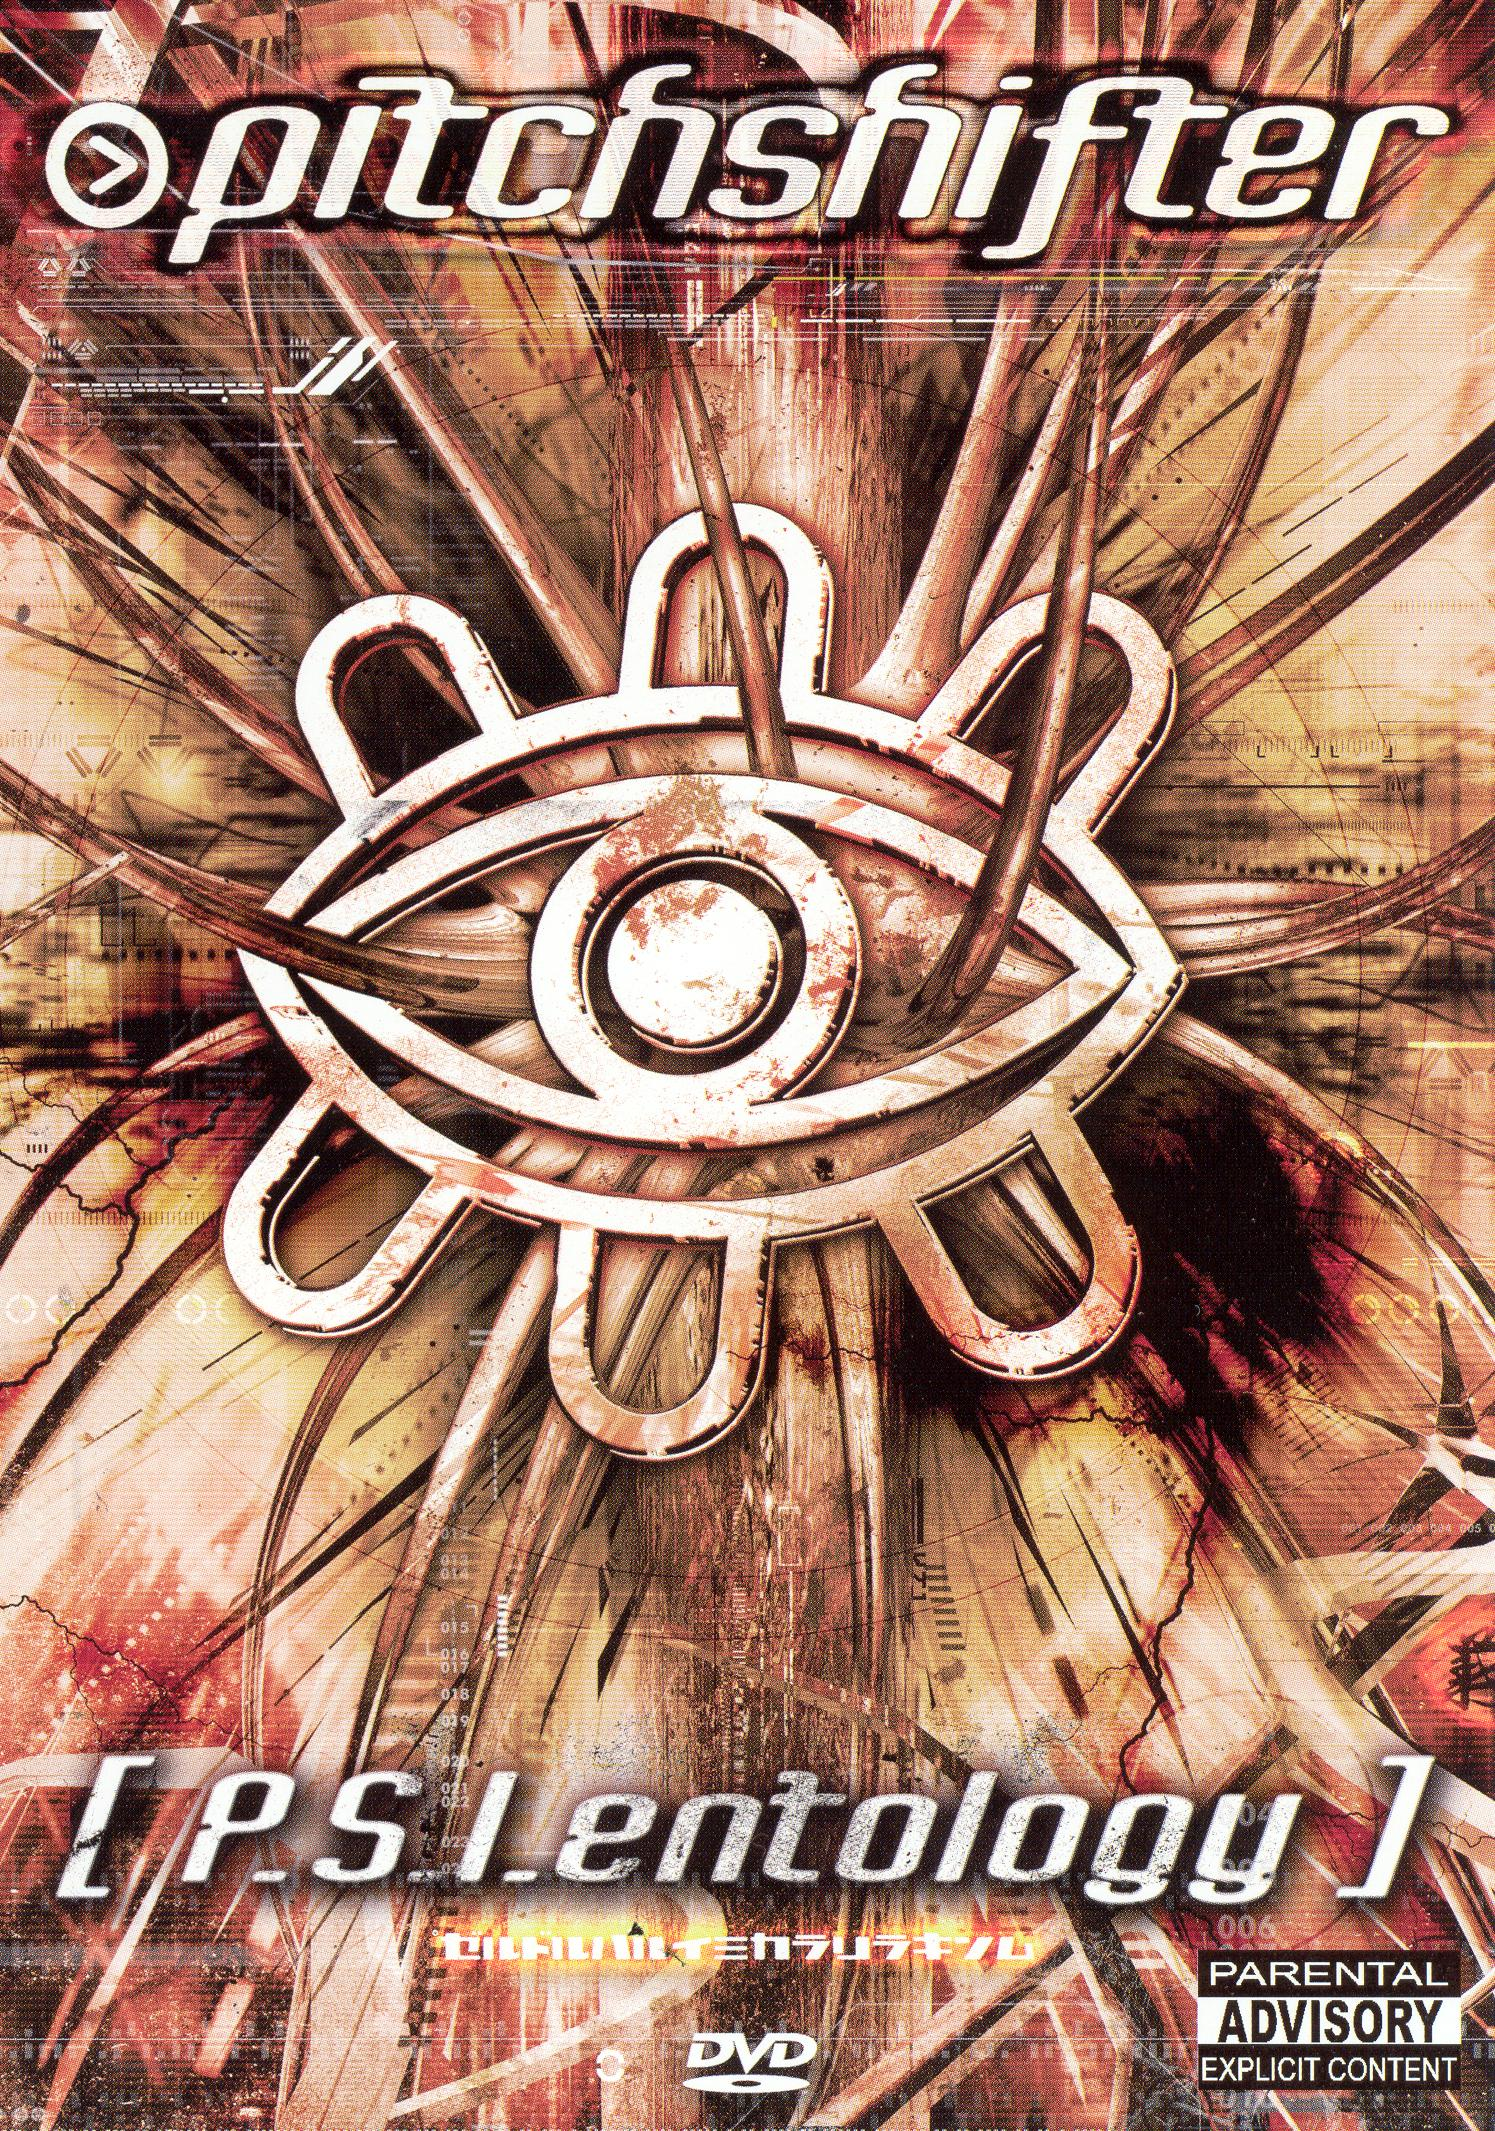 Pitchshifter: Psi Entology